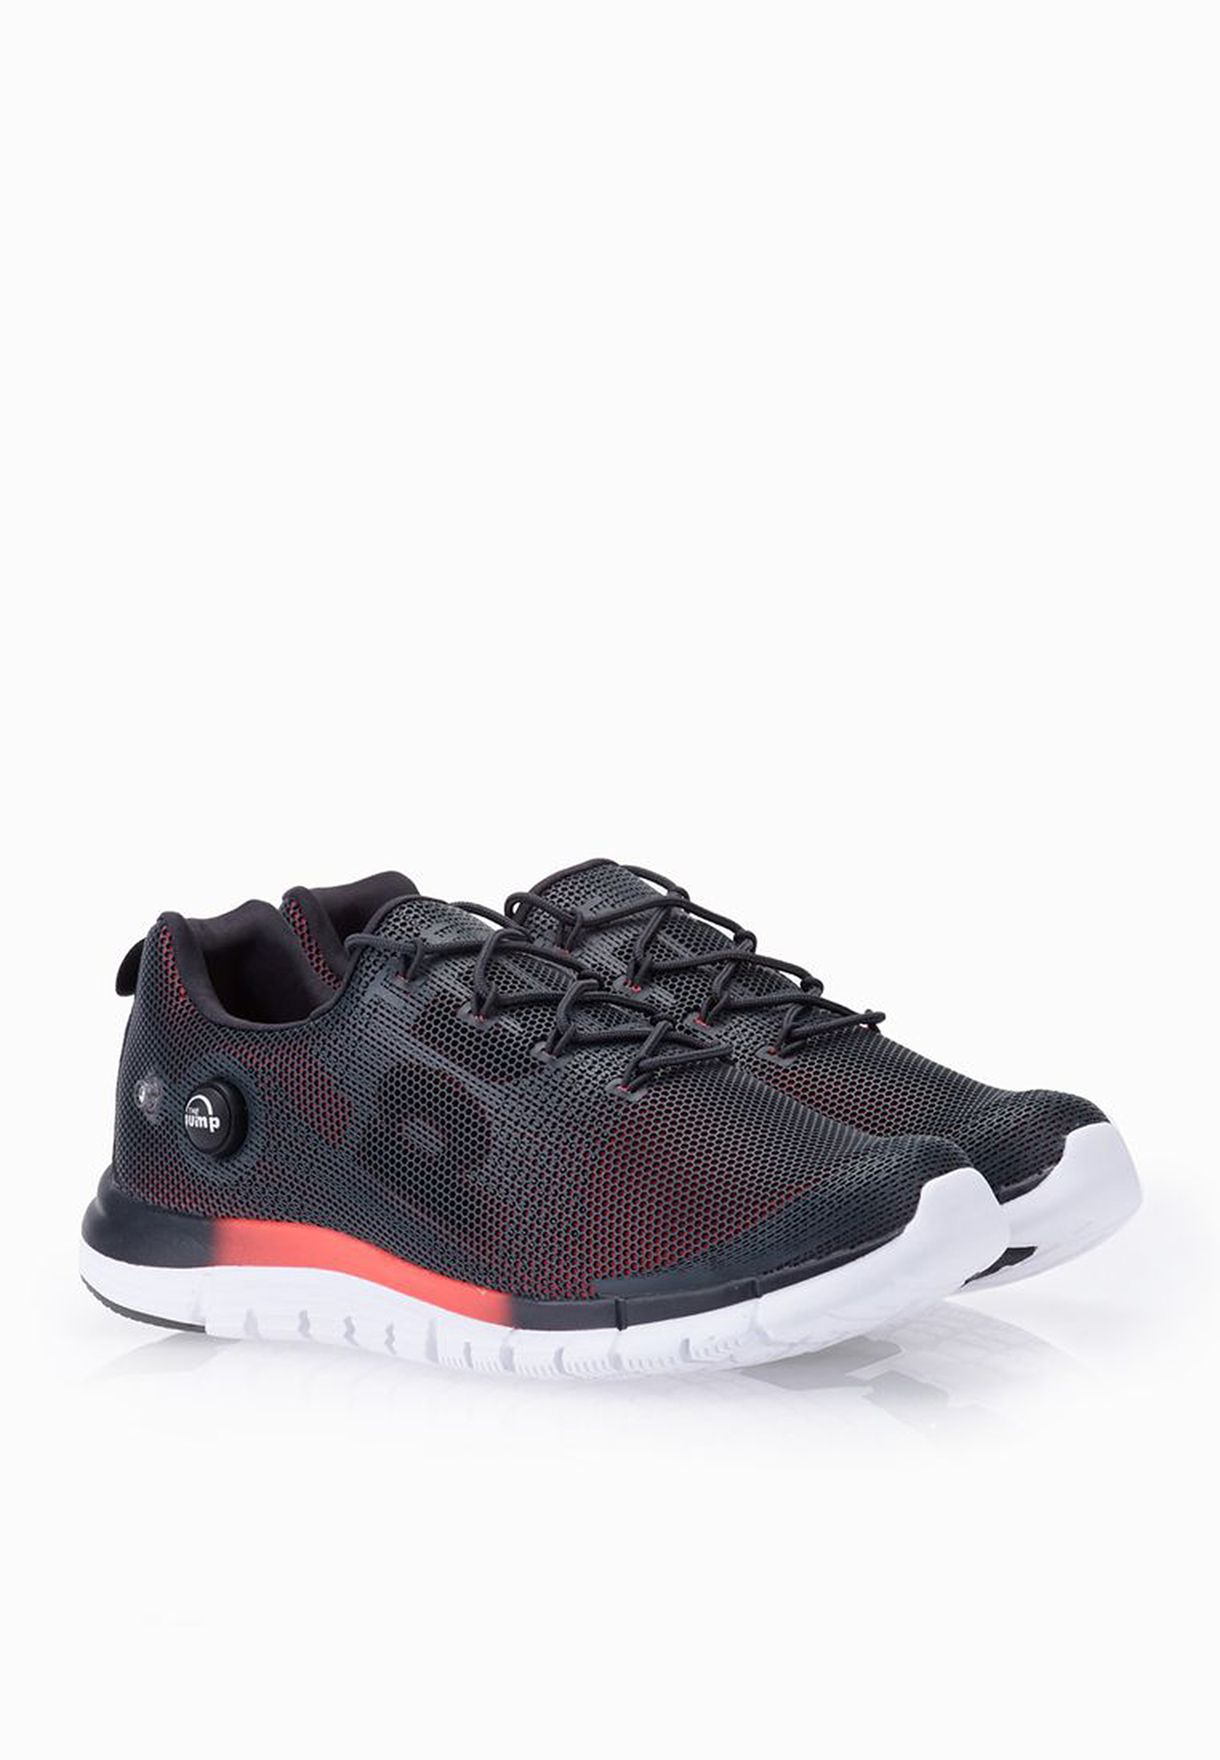 ZPUMP Fusion PU Running Shoes Trainers